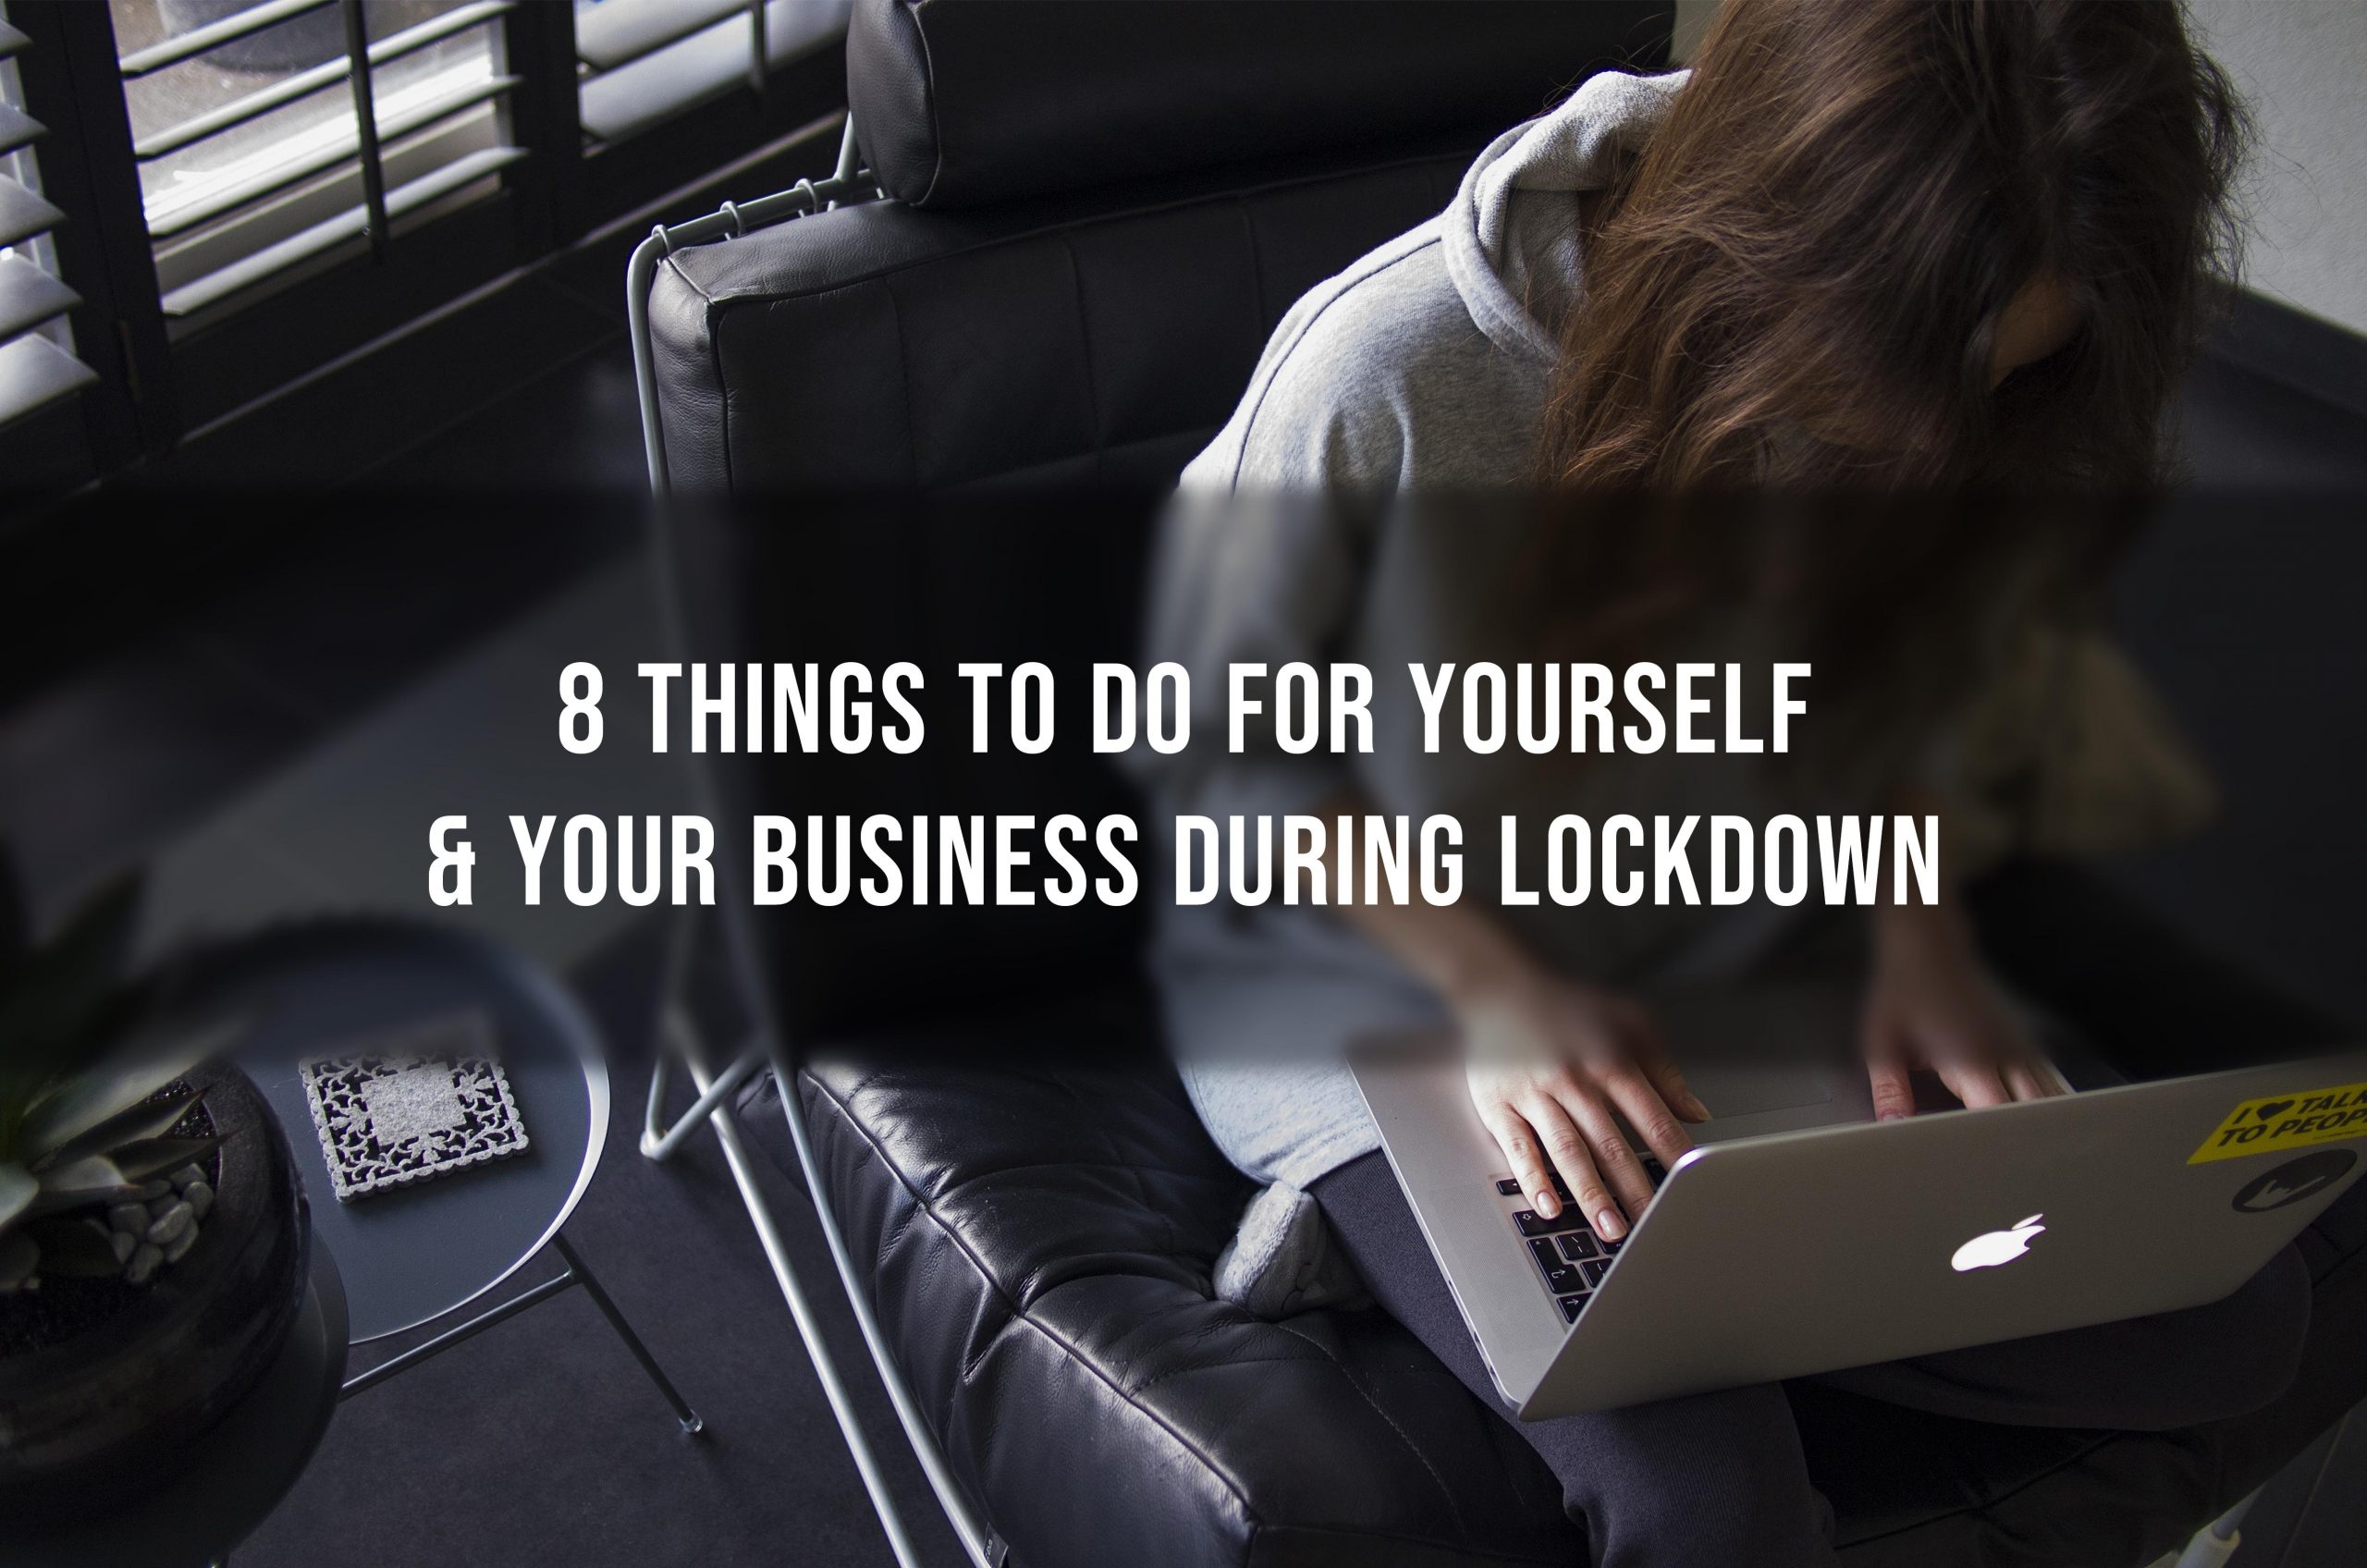 8 Things to Do for Yourself & Your Business During Lockdown